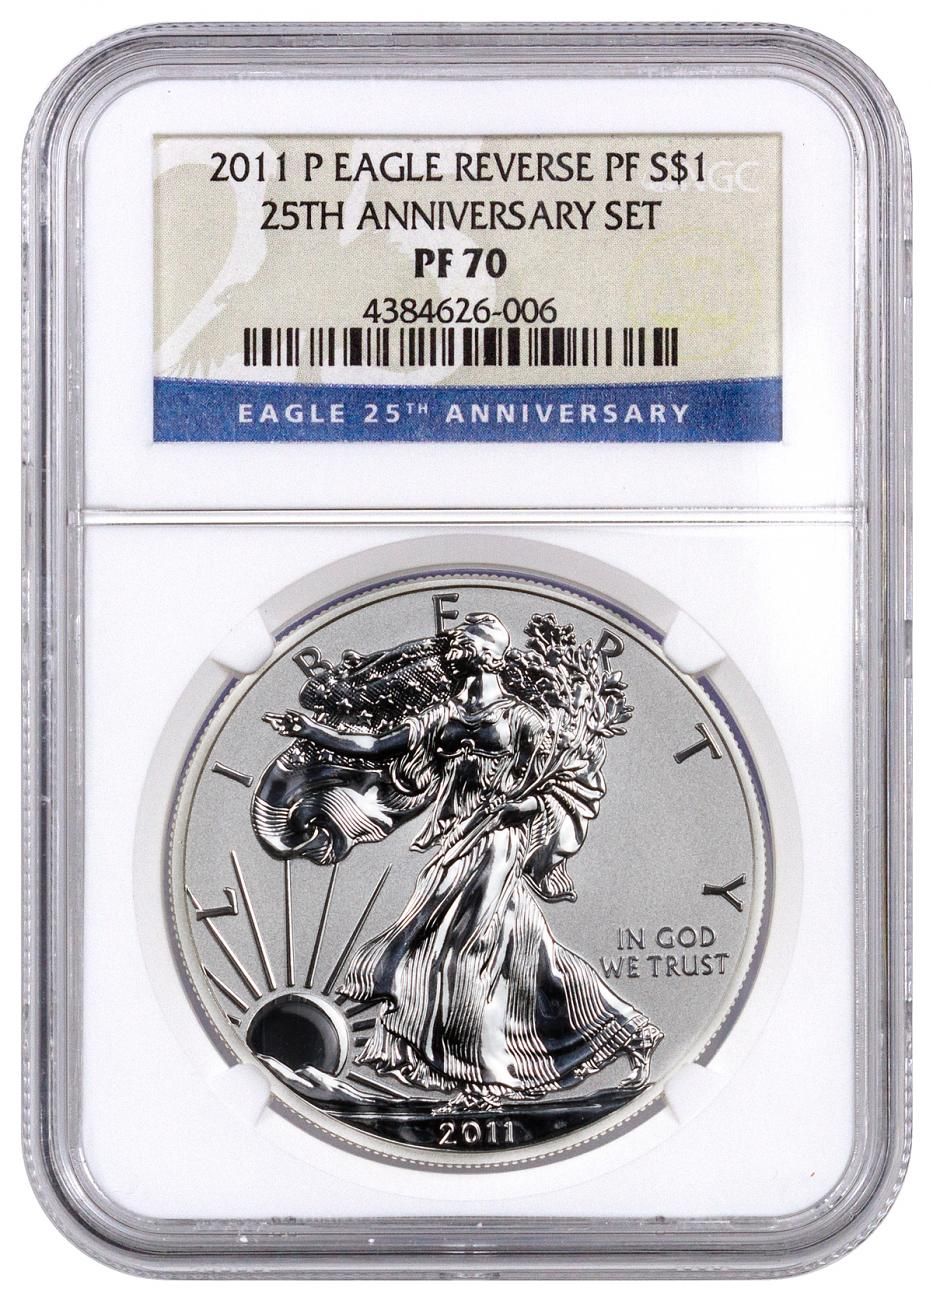 2011 P Reverse Proof Silver Eagle From 25th Anniversary